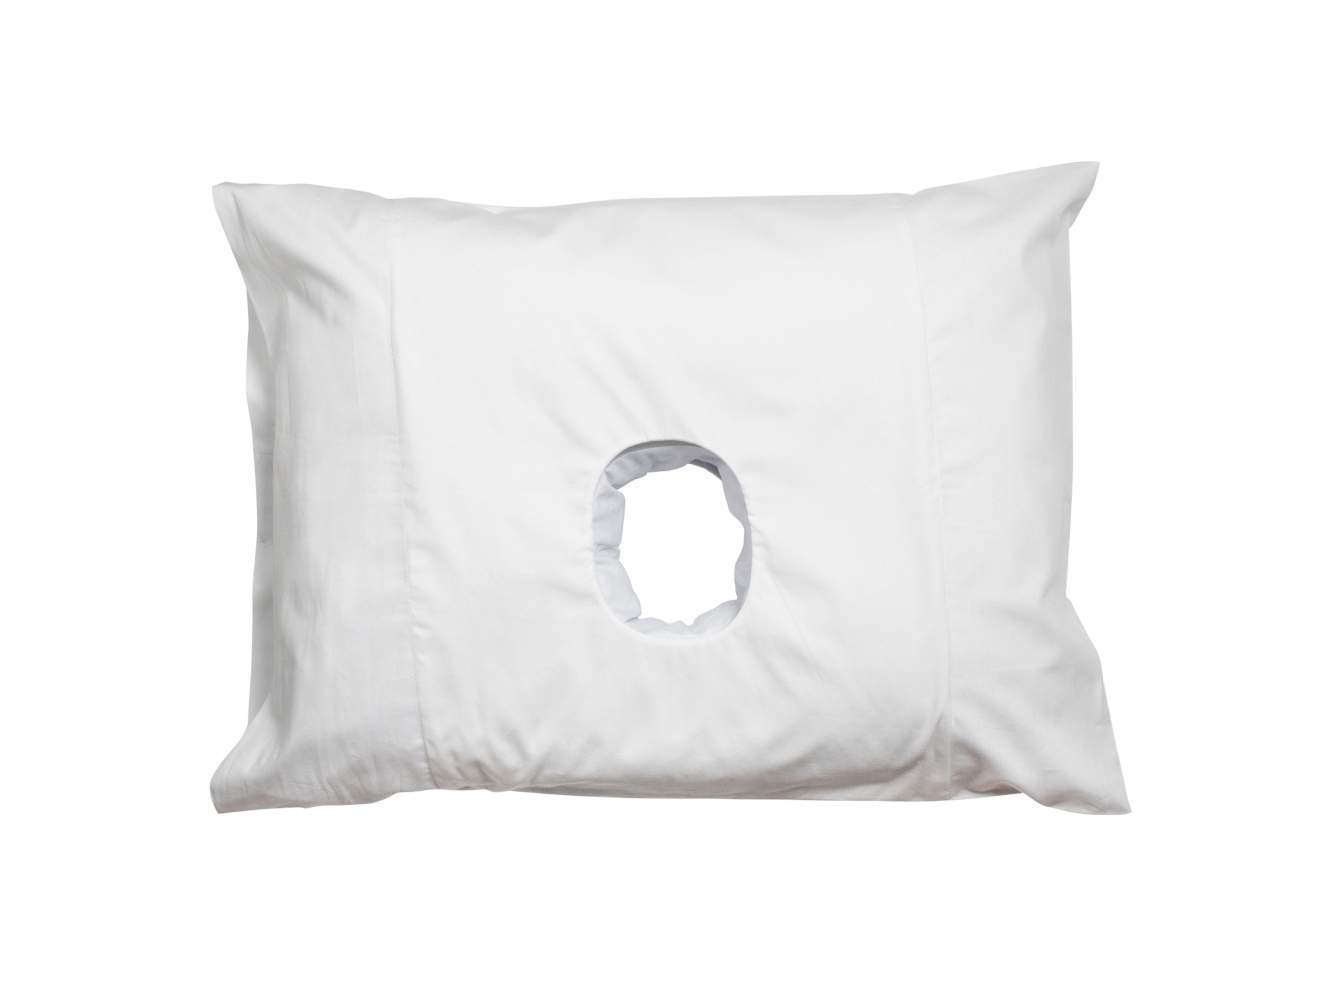 The Original Pillow with a Hole  For Ear Pain and CNH